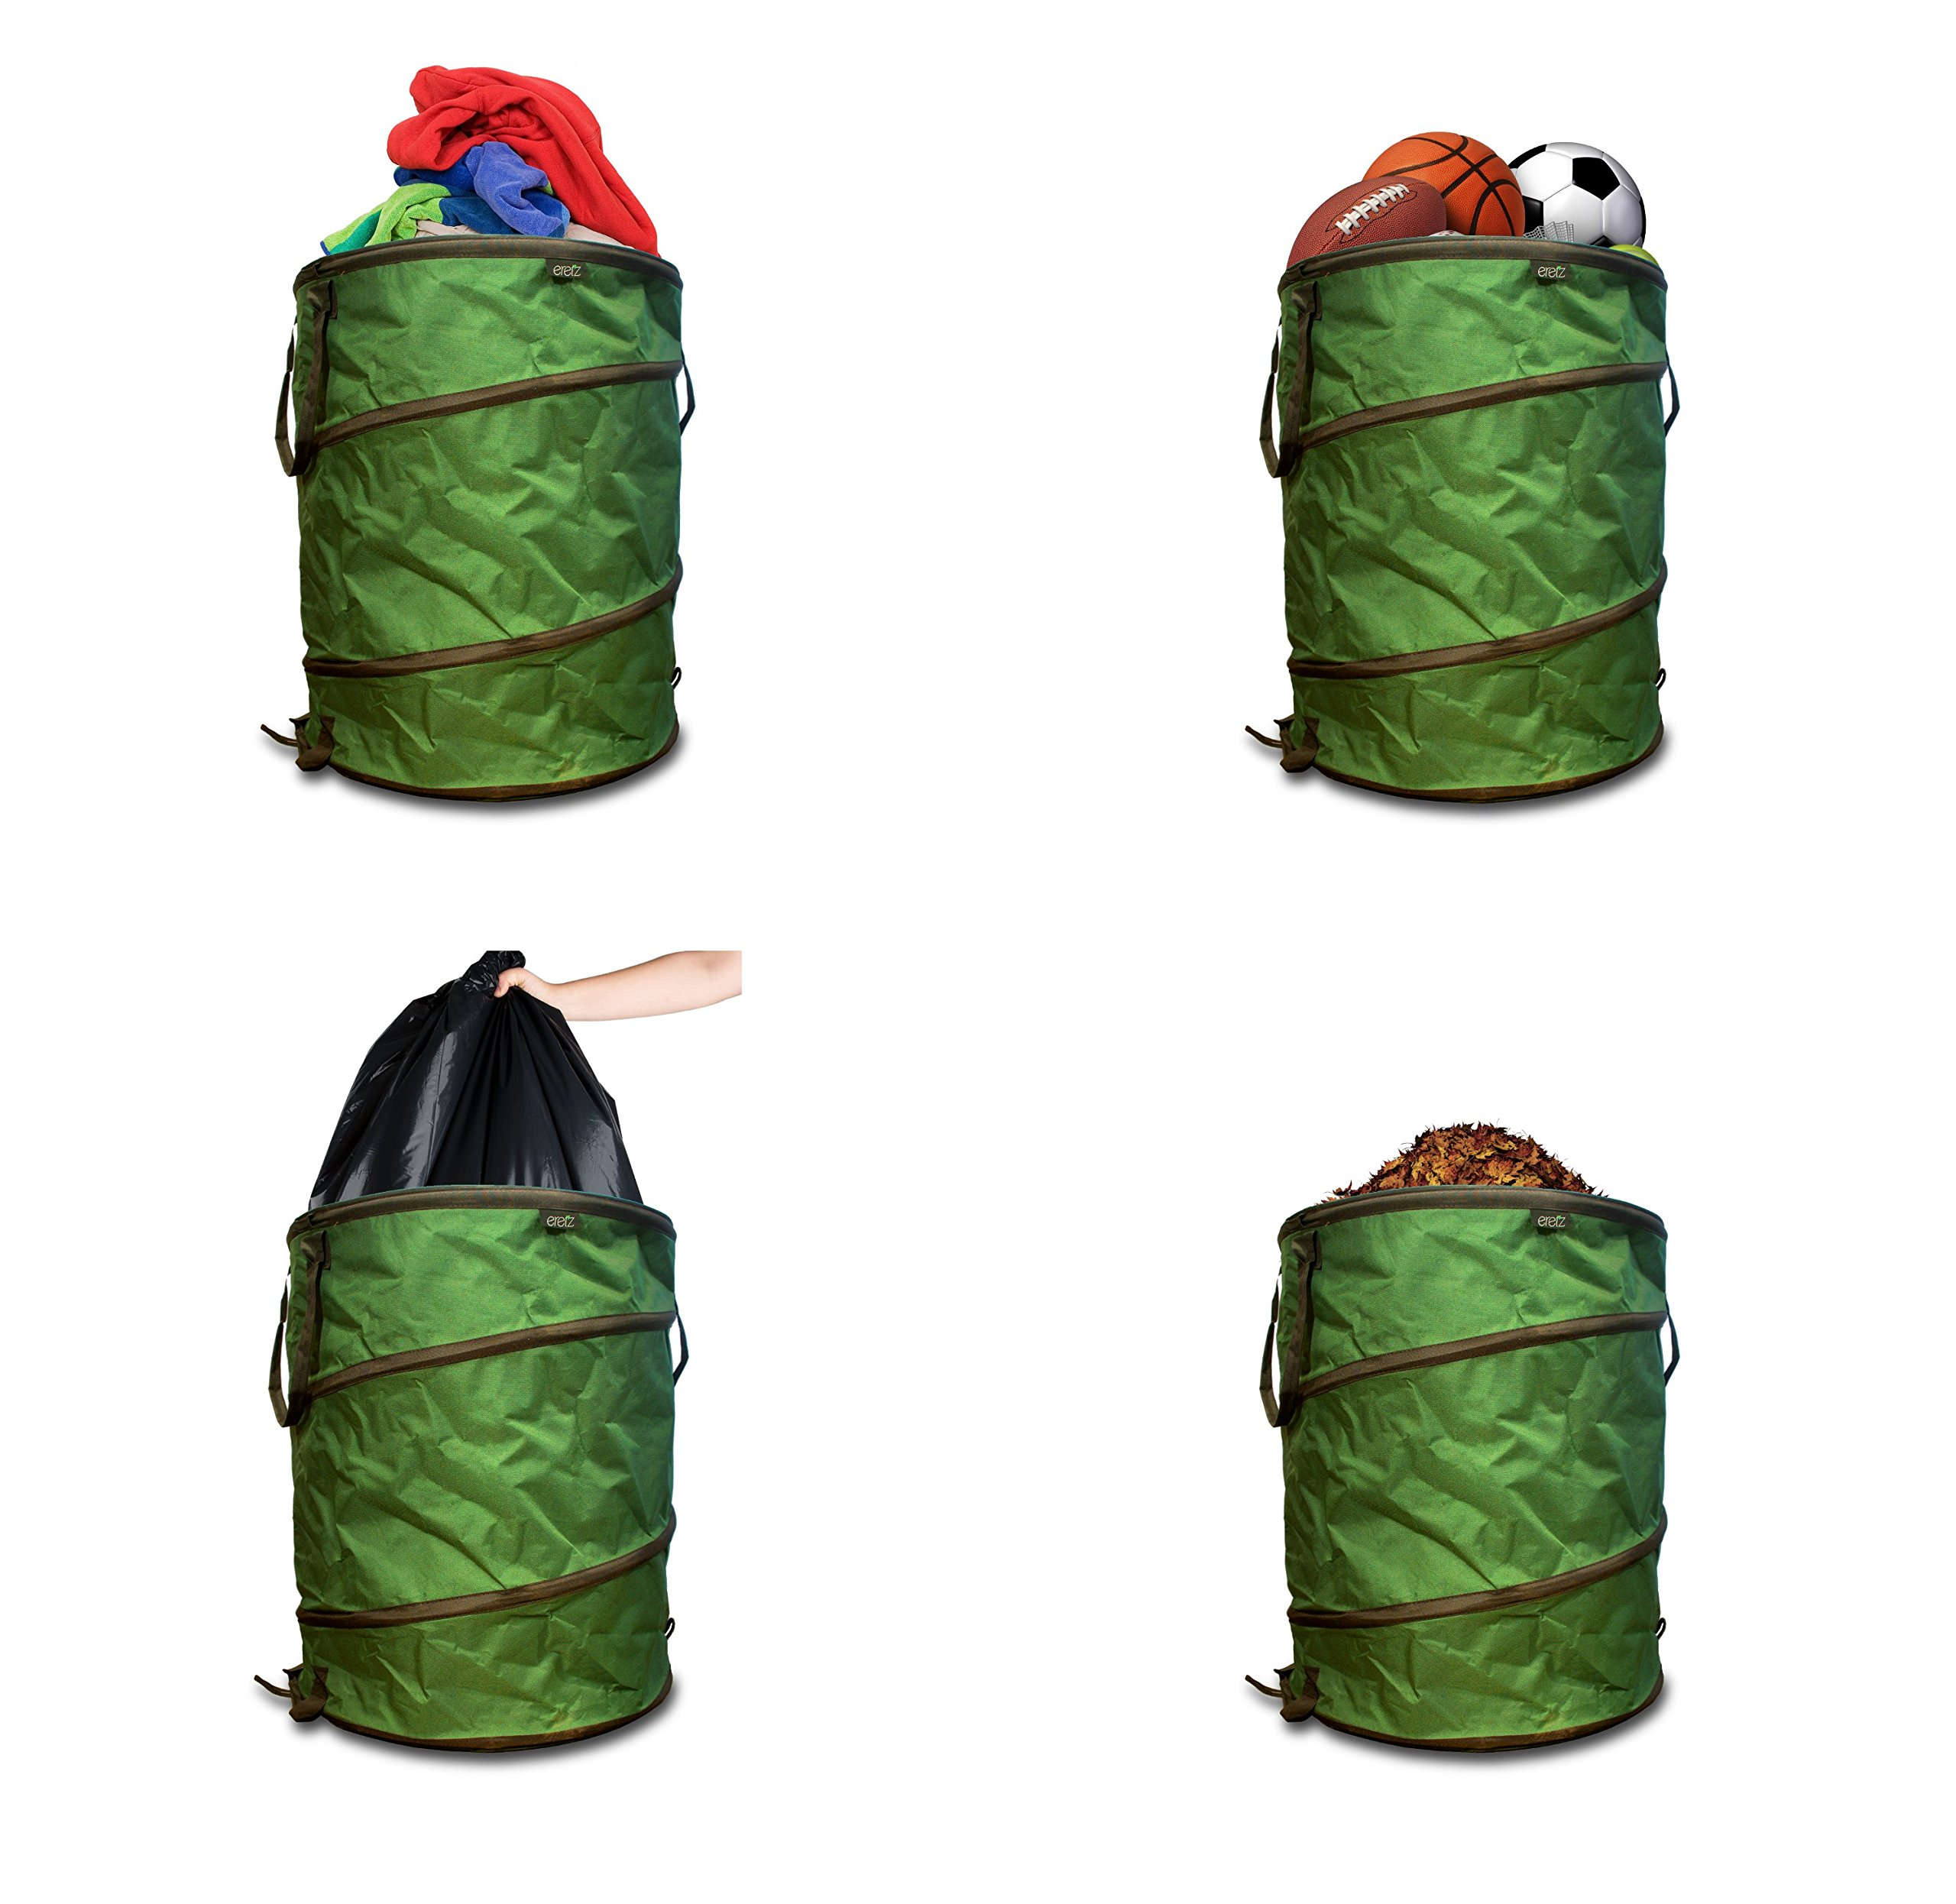 (35 Gallon) Heavy Duty Pop-Up Collapsible Yard & Garden Bag by Eretz (Image #4)